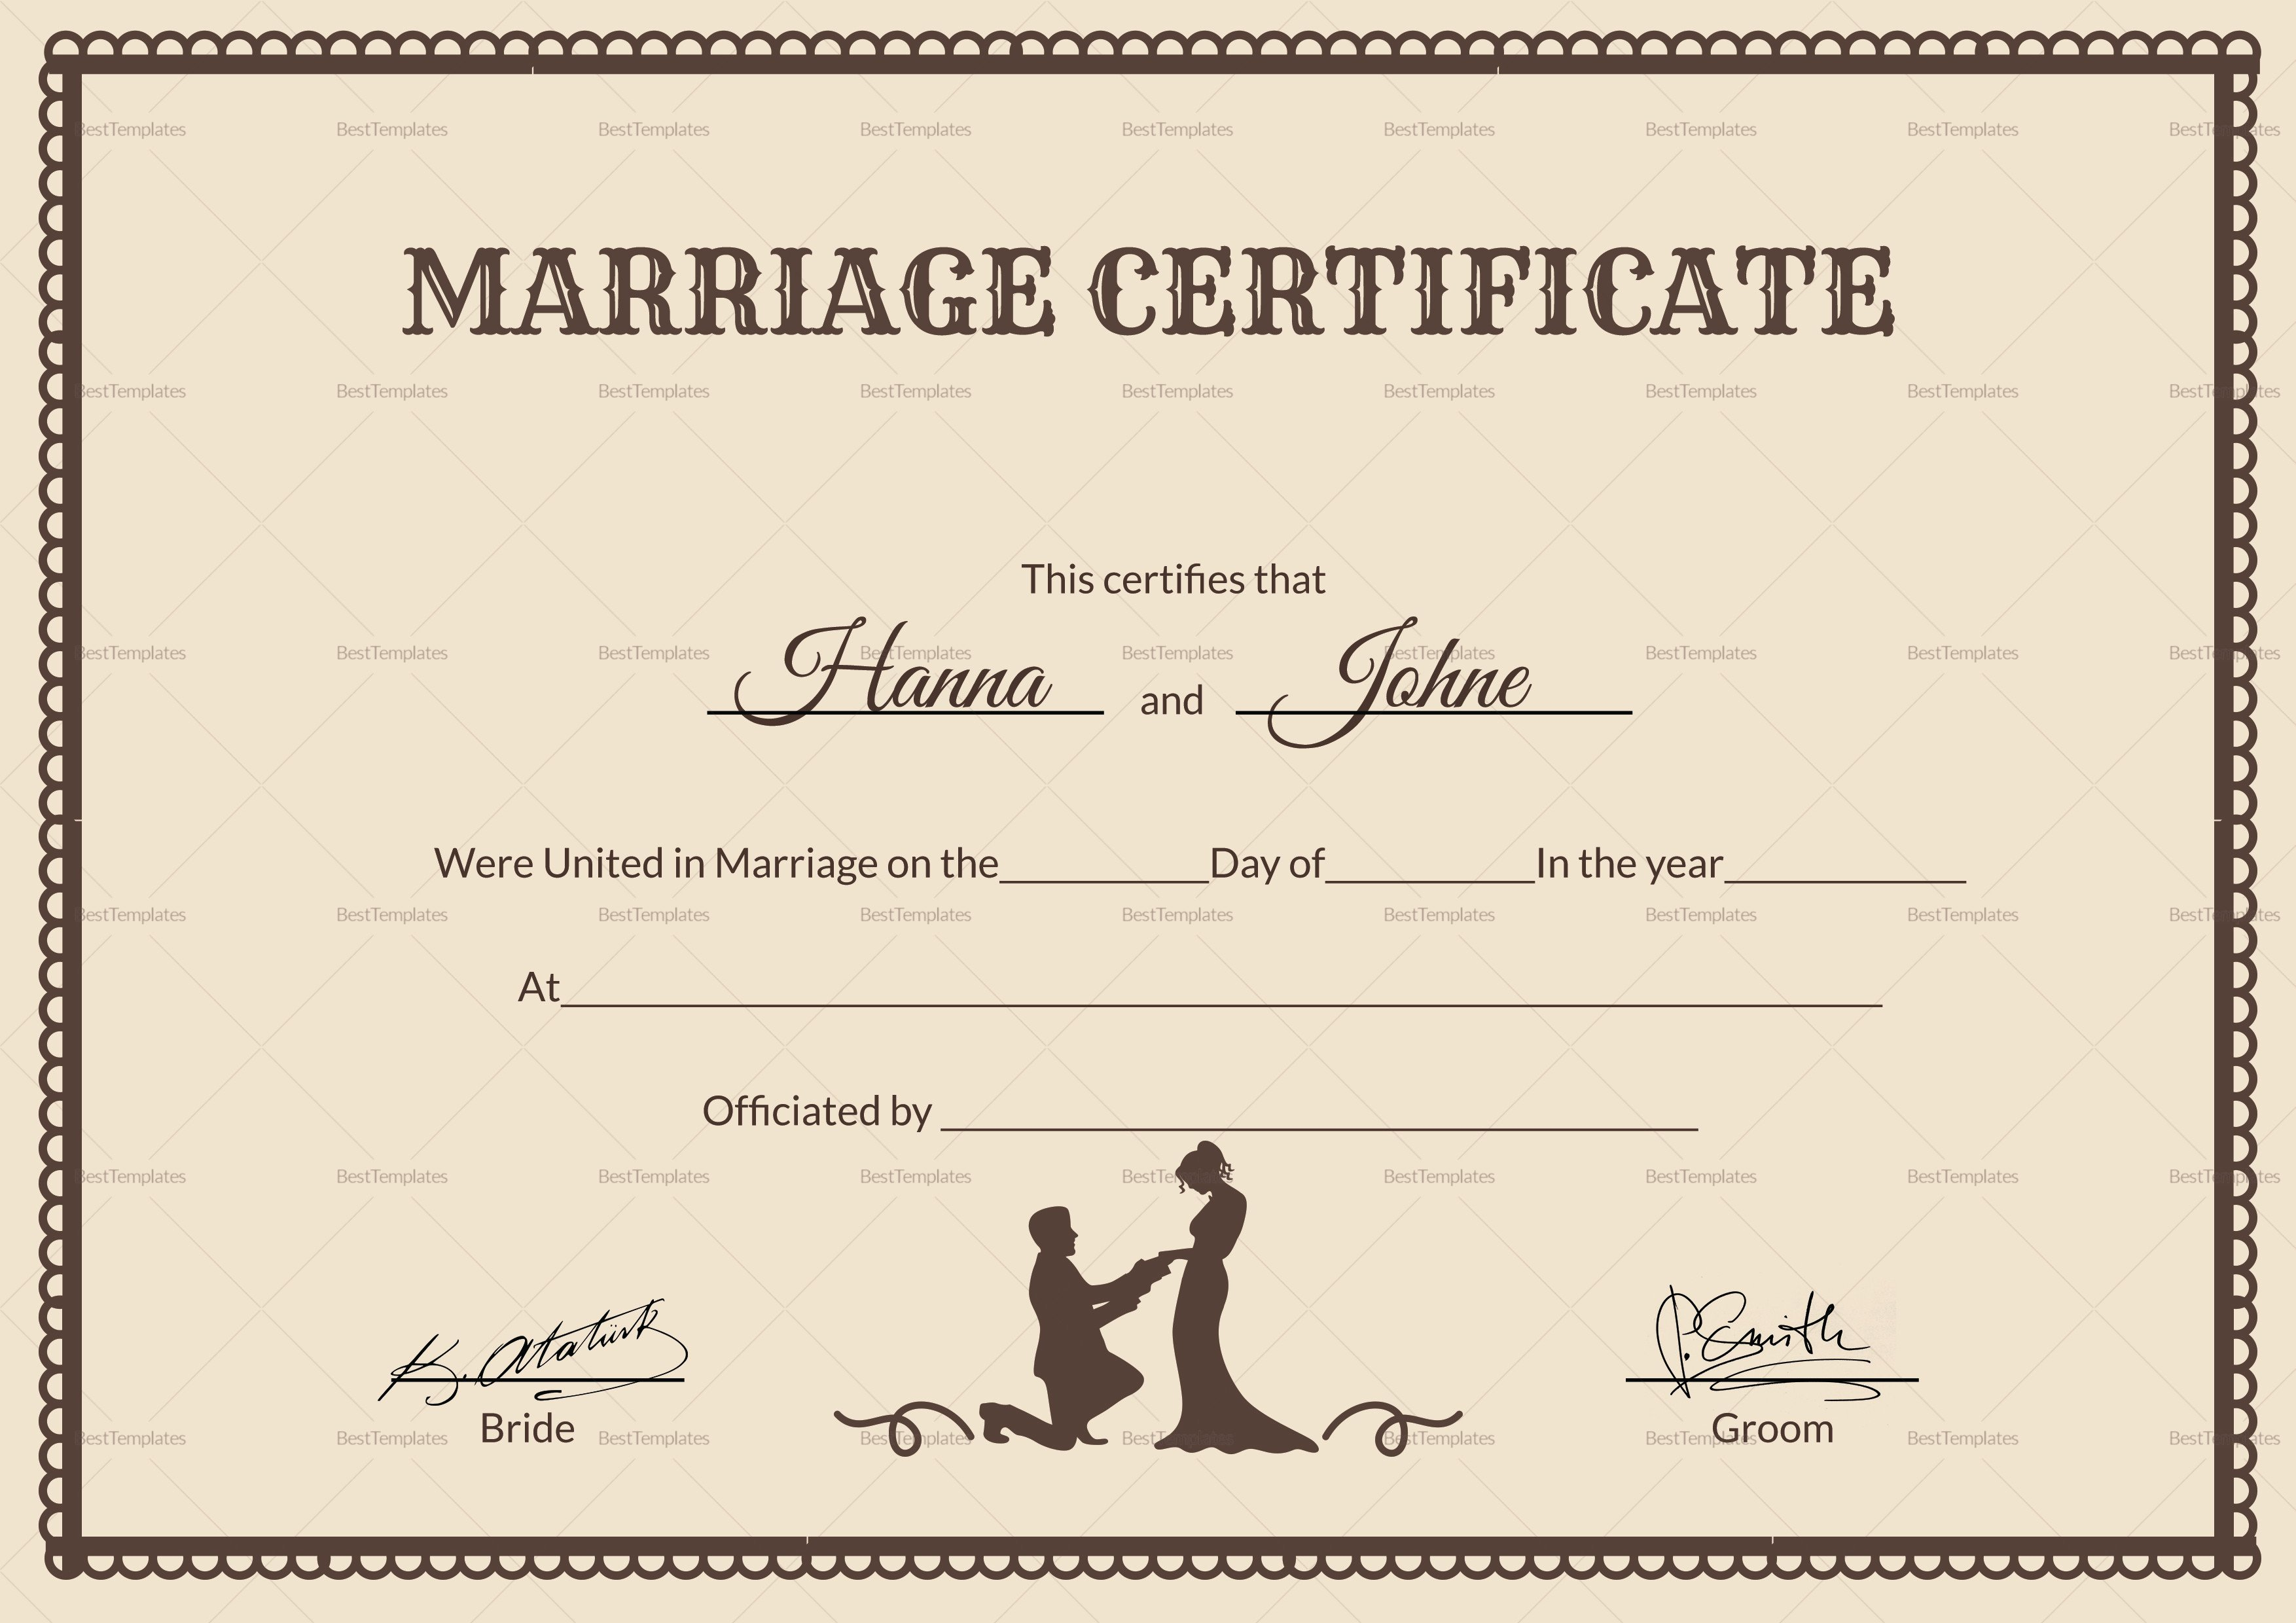 Free Marriage Certificate Template Vintage Marriage Certificate Design Template In Psd Word